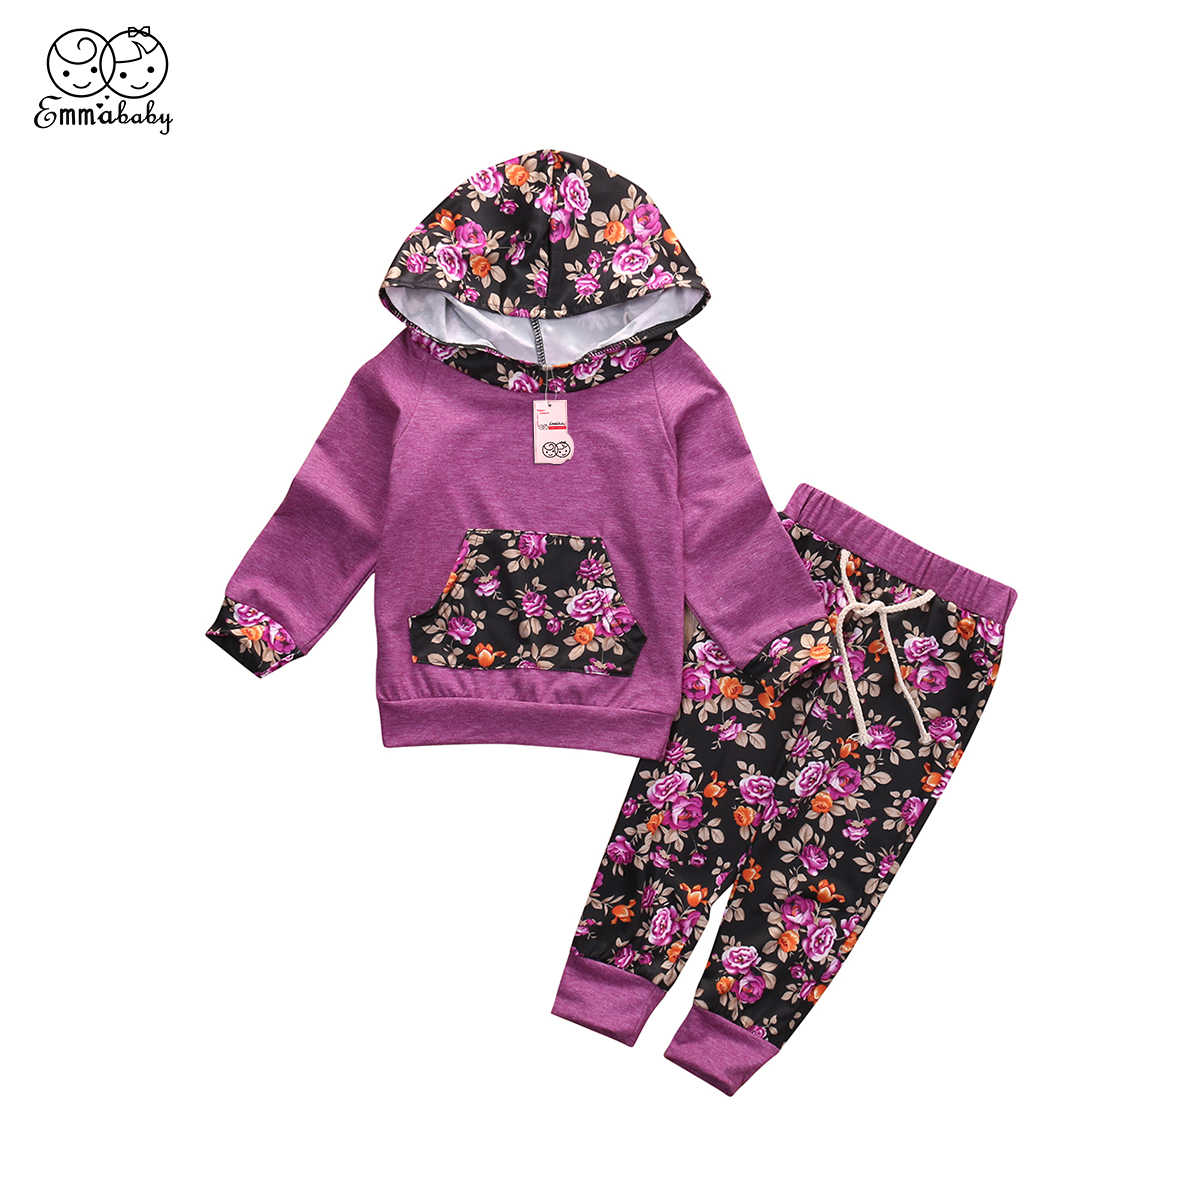 f78031829 Detail Feedback Questions about 2PCS Newborn Kids Baby Girl Clothes ...